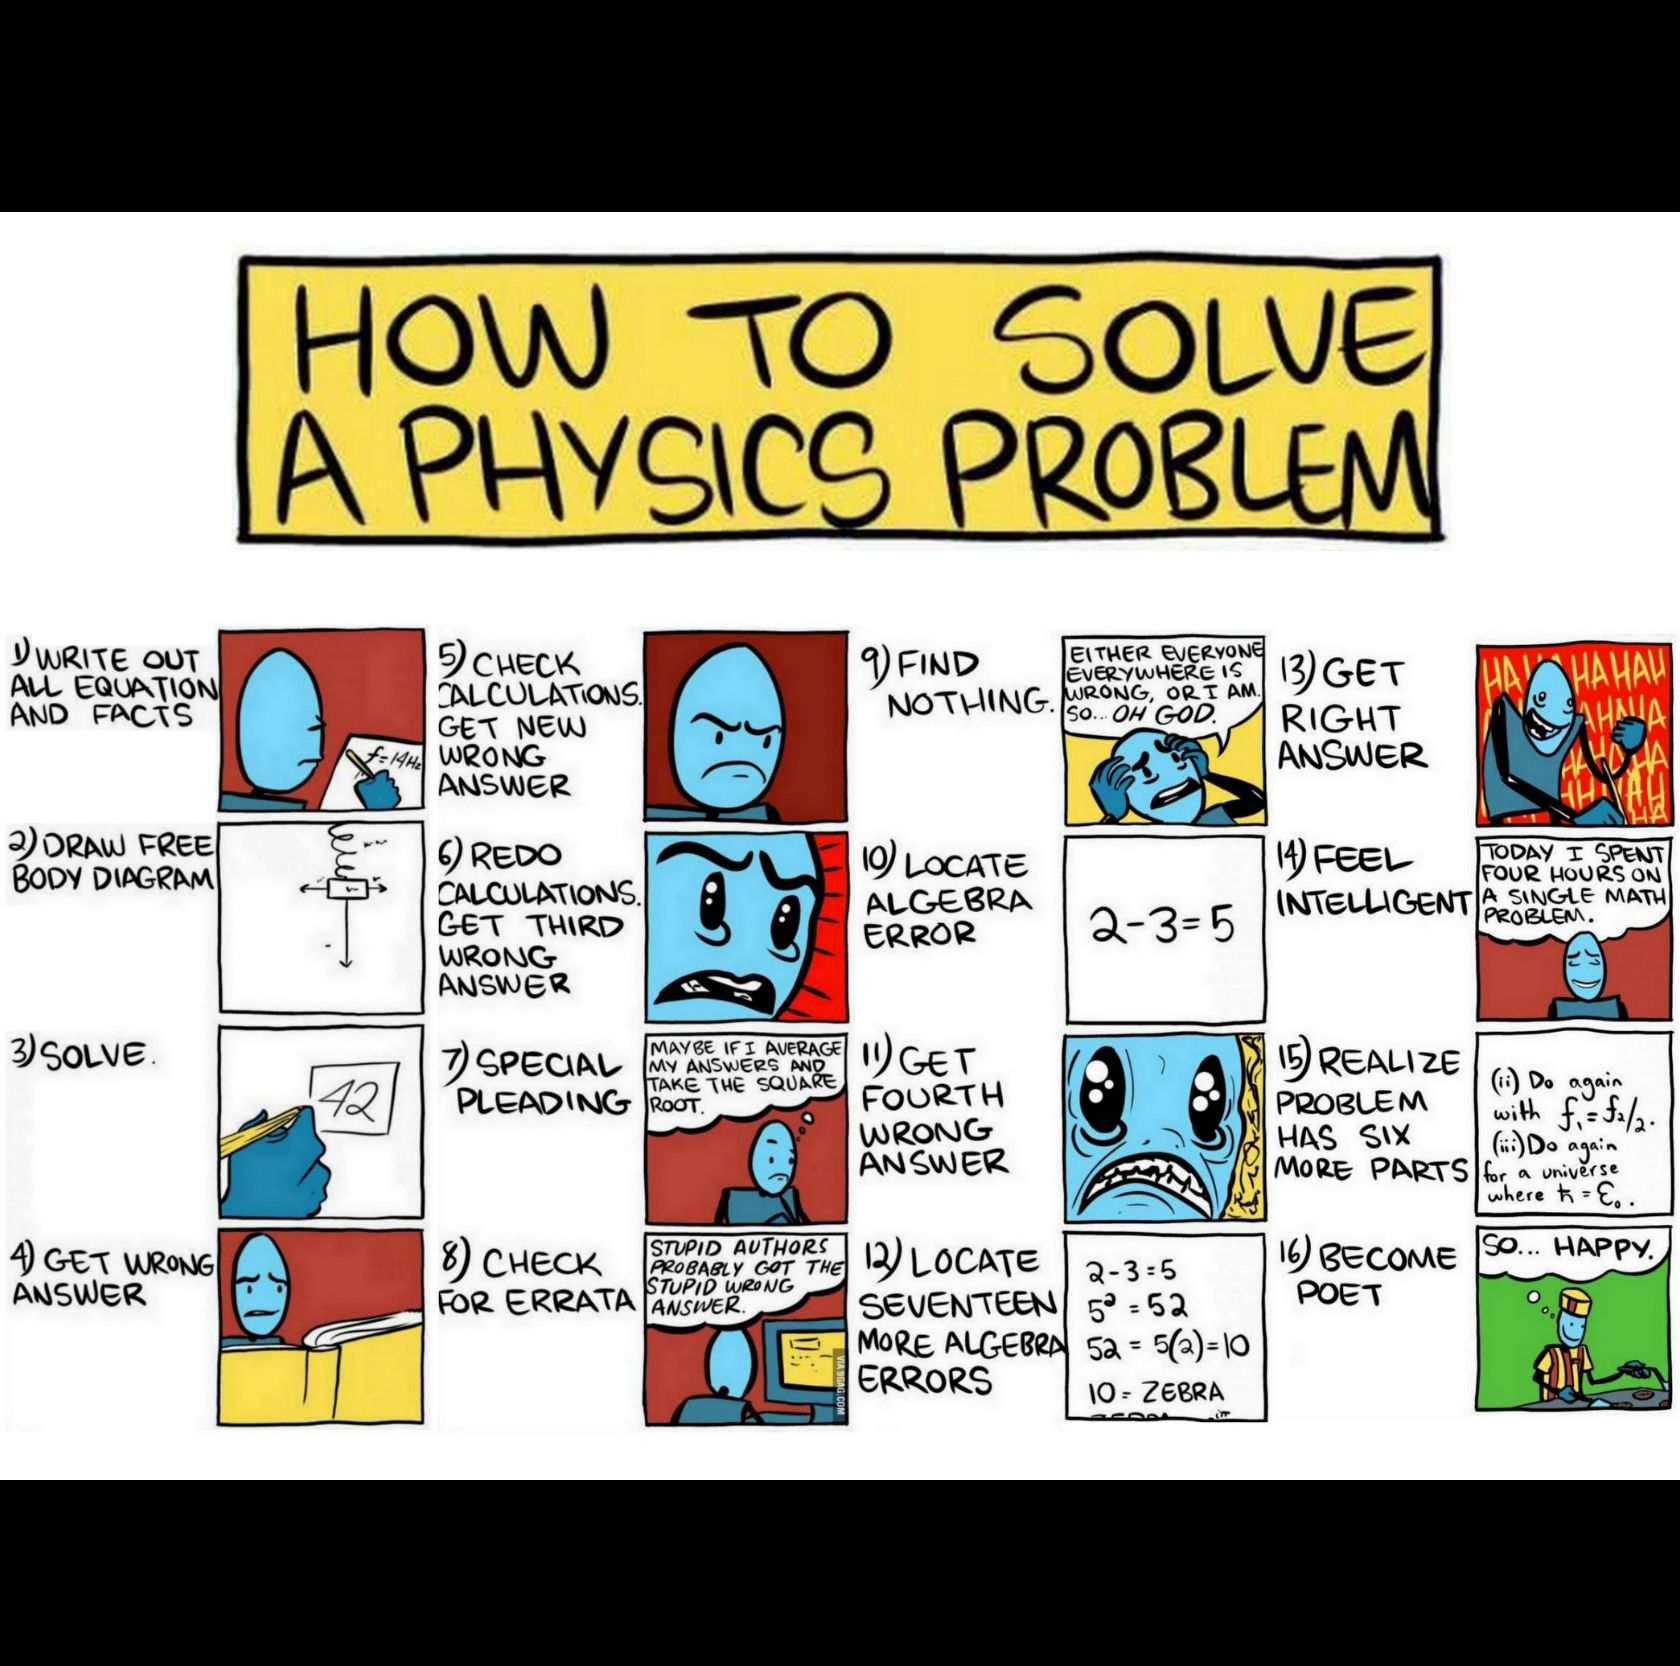 How To Solve Physics Problem Cupsoguepictures How To